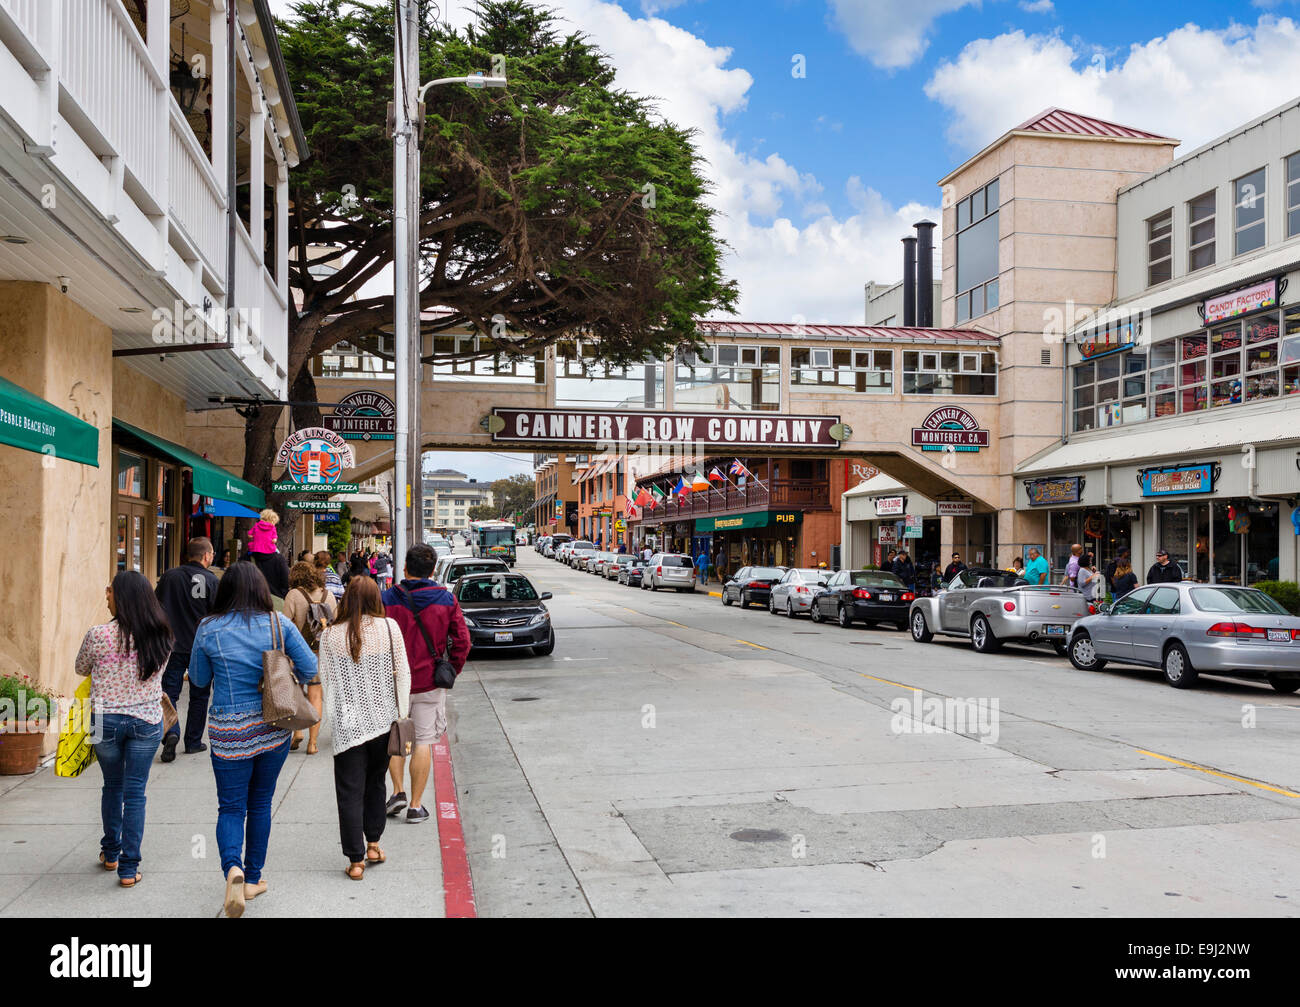 Cafes and stores along Cannery Row, Monterey, California, USA - Stock Image